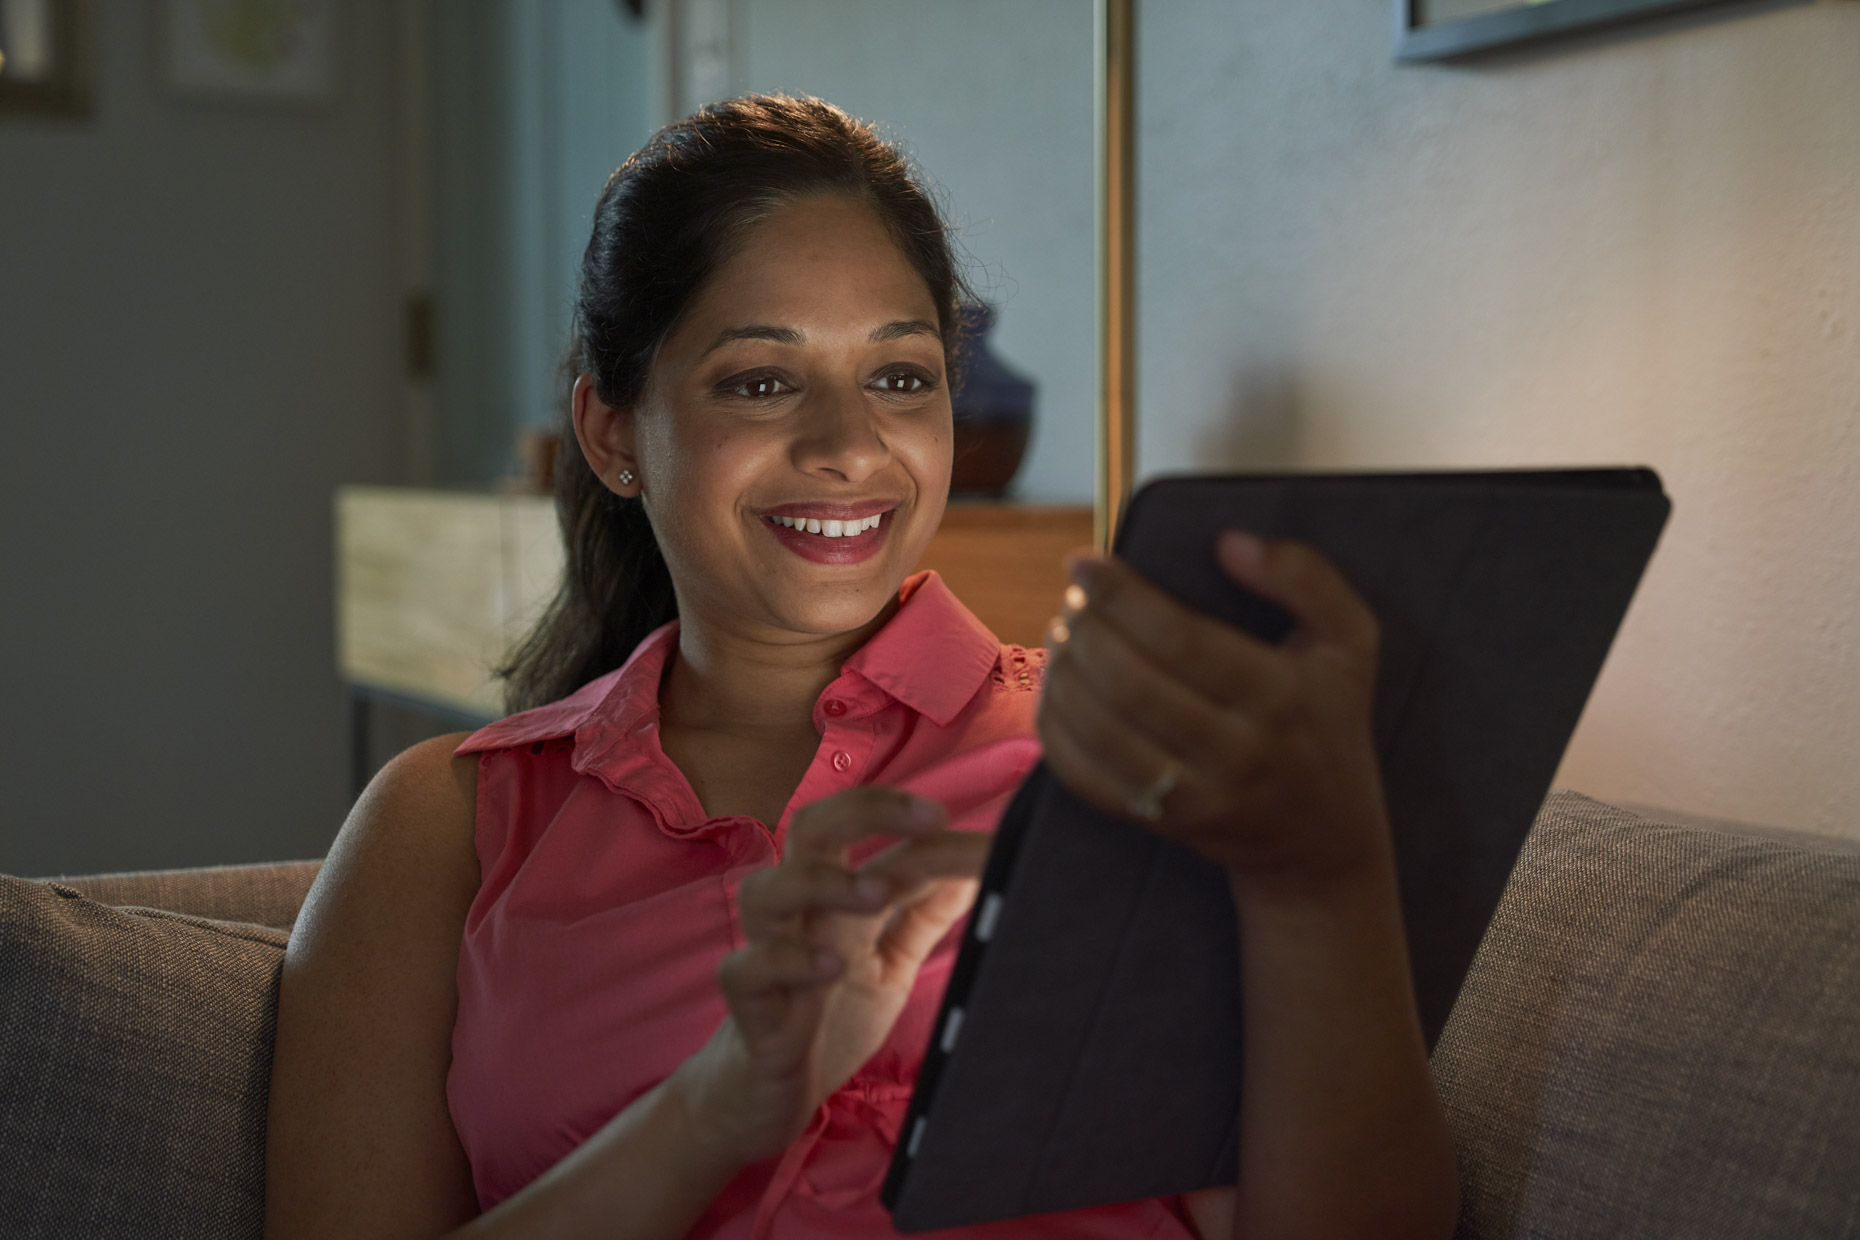 Smiling woman with face lit by ipad tablet computer